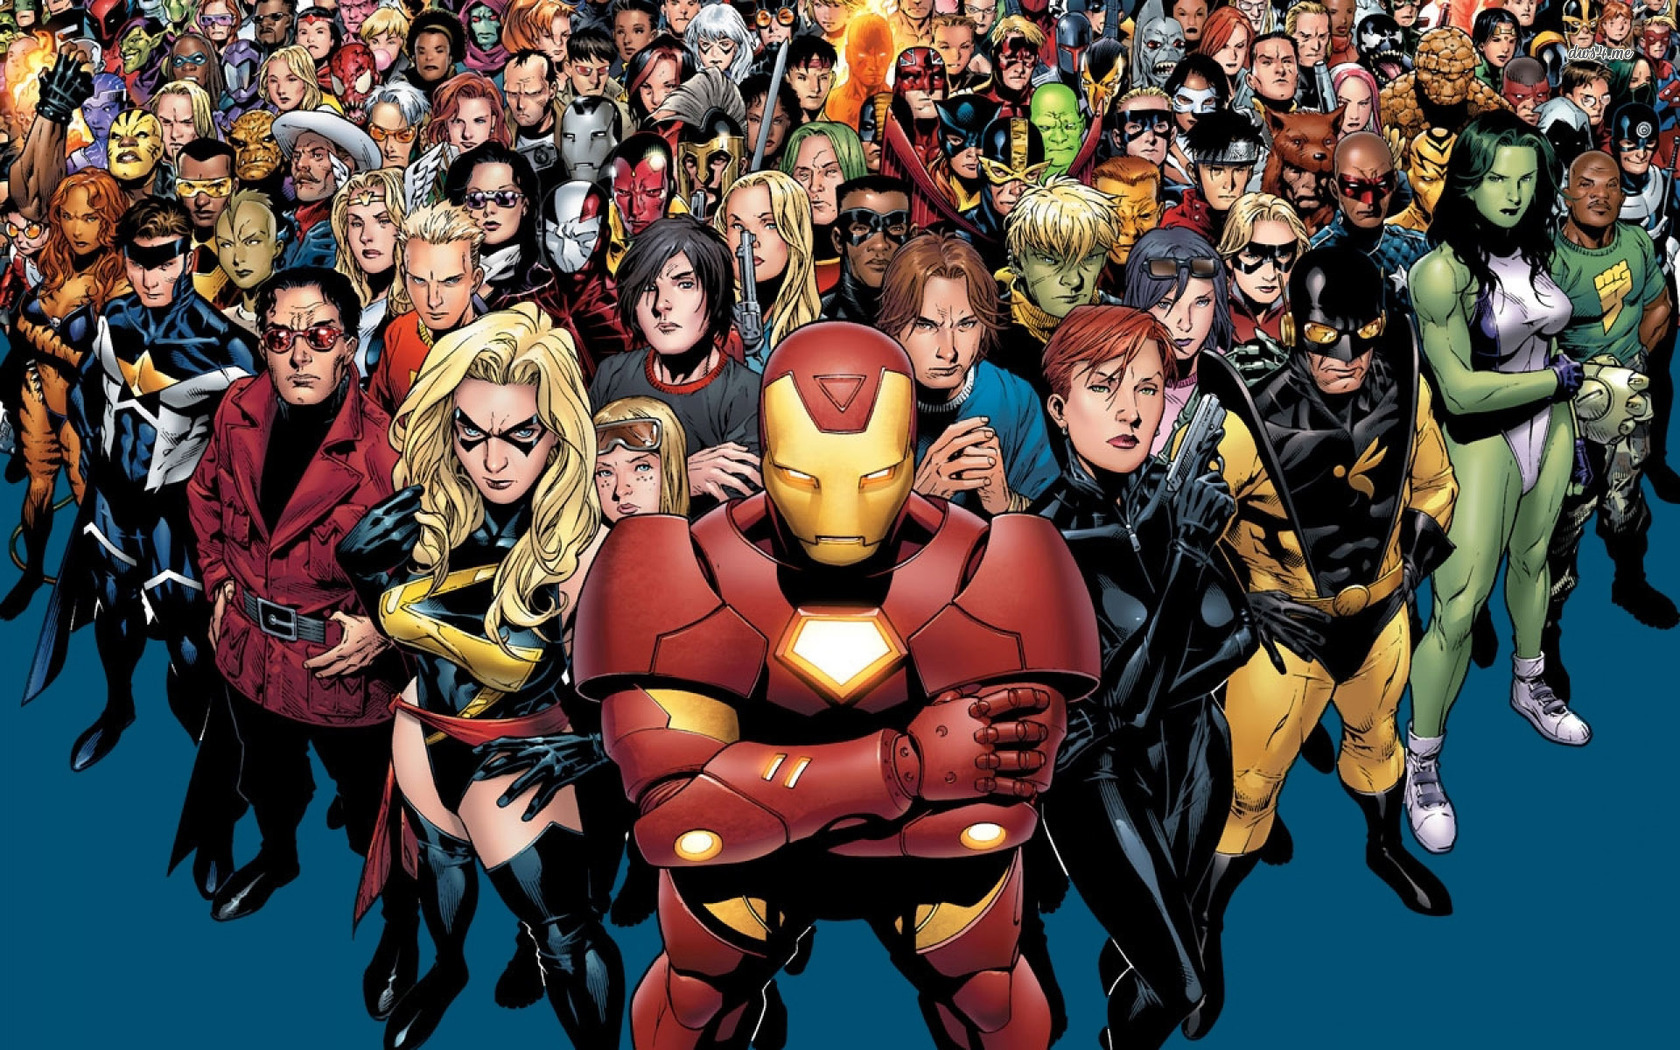 an analysis of the superhero origins and the comparison among the heroes After the war, the superhero genre lost steam, marking what many consider to be the end of the golden age the era itself, though, left an indelible mark on comic books with many of the characters.